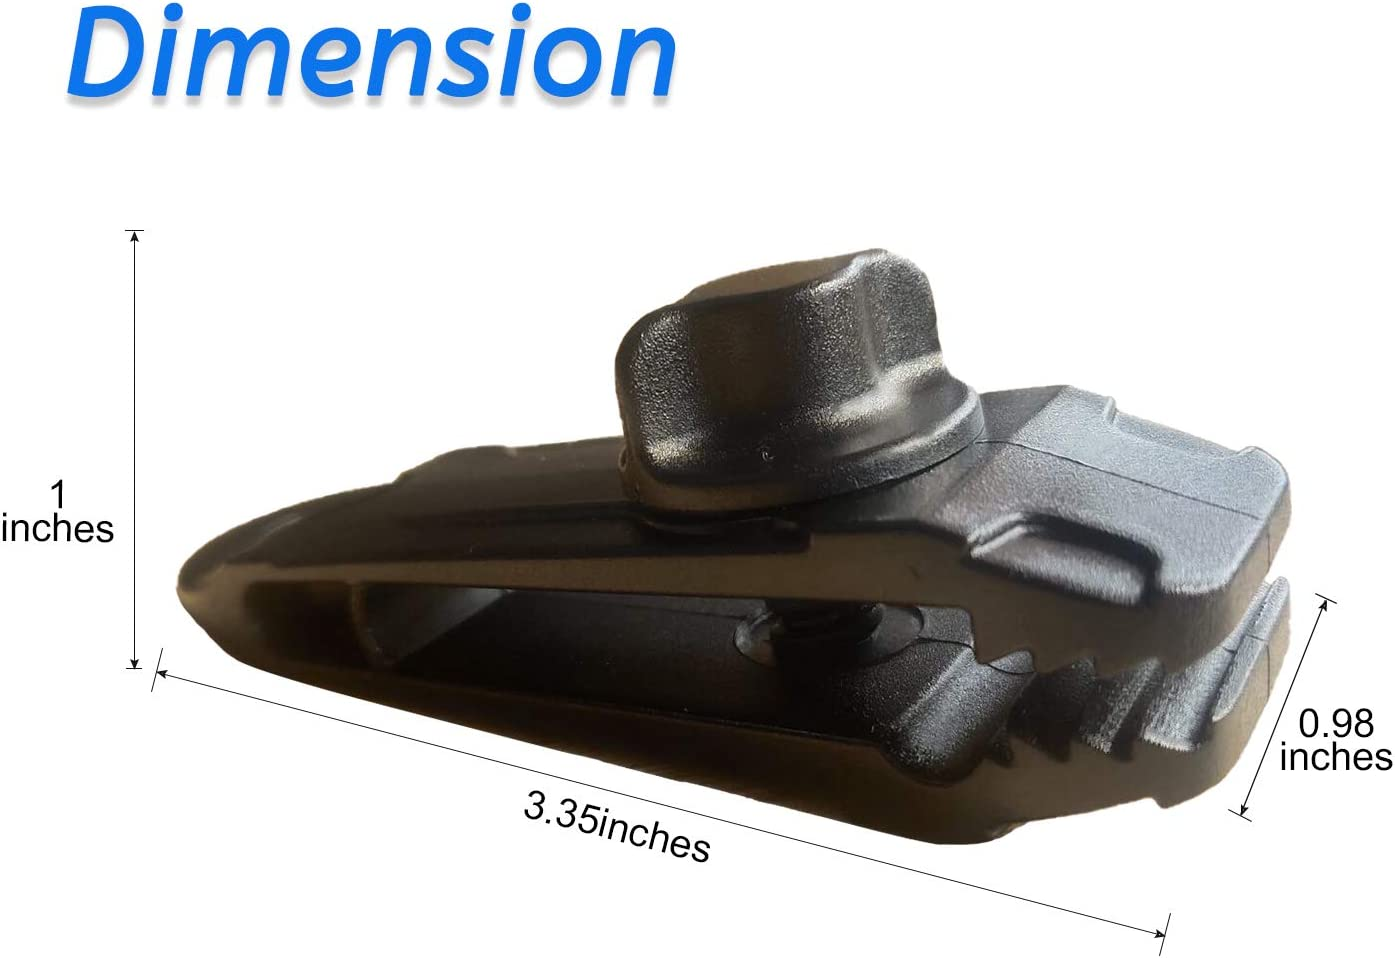 LOVE STORY Tarp Clips 10Pcs Shade Sail Tighten Tool Alligator Tent Clamp for Outdoor Tarps